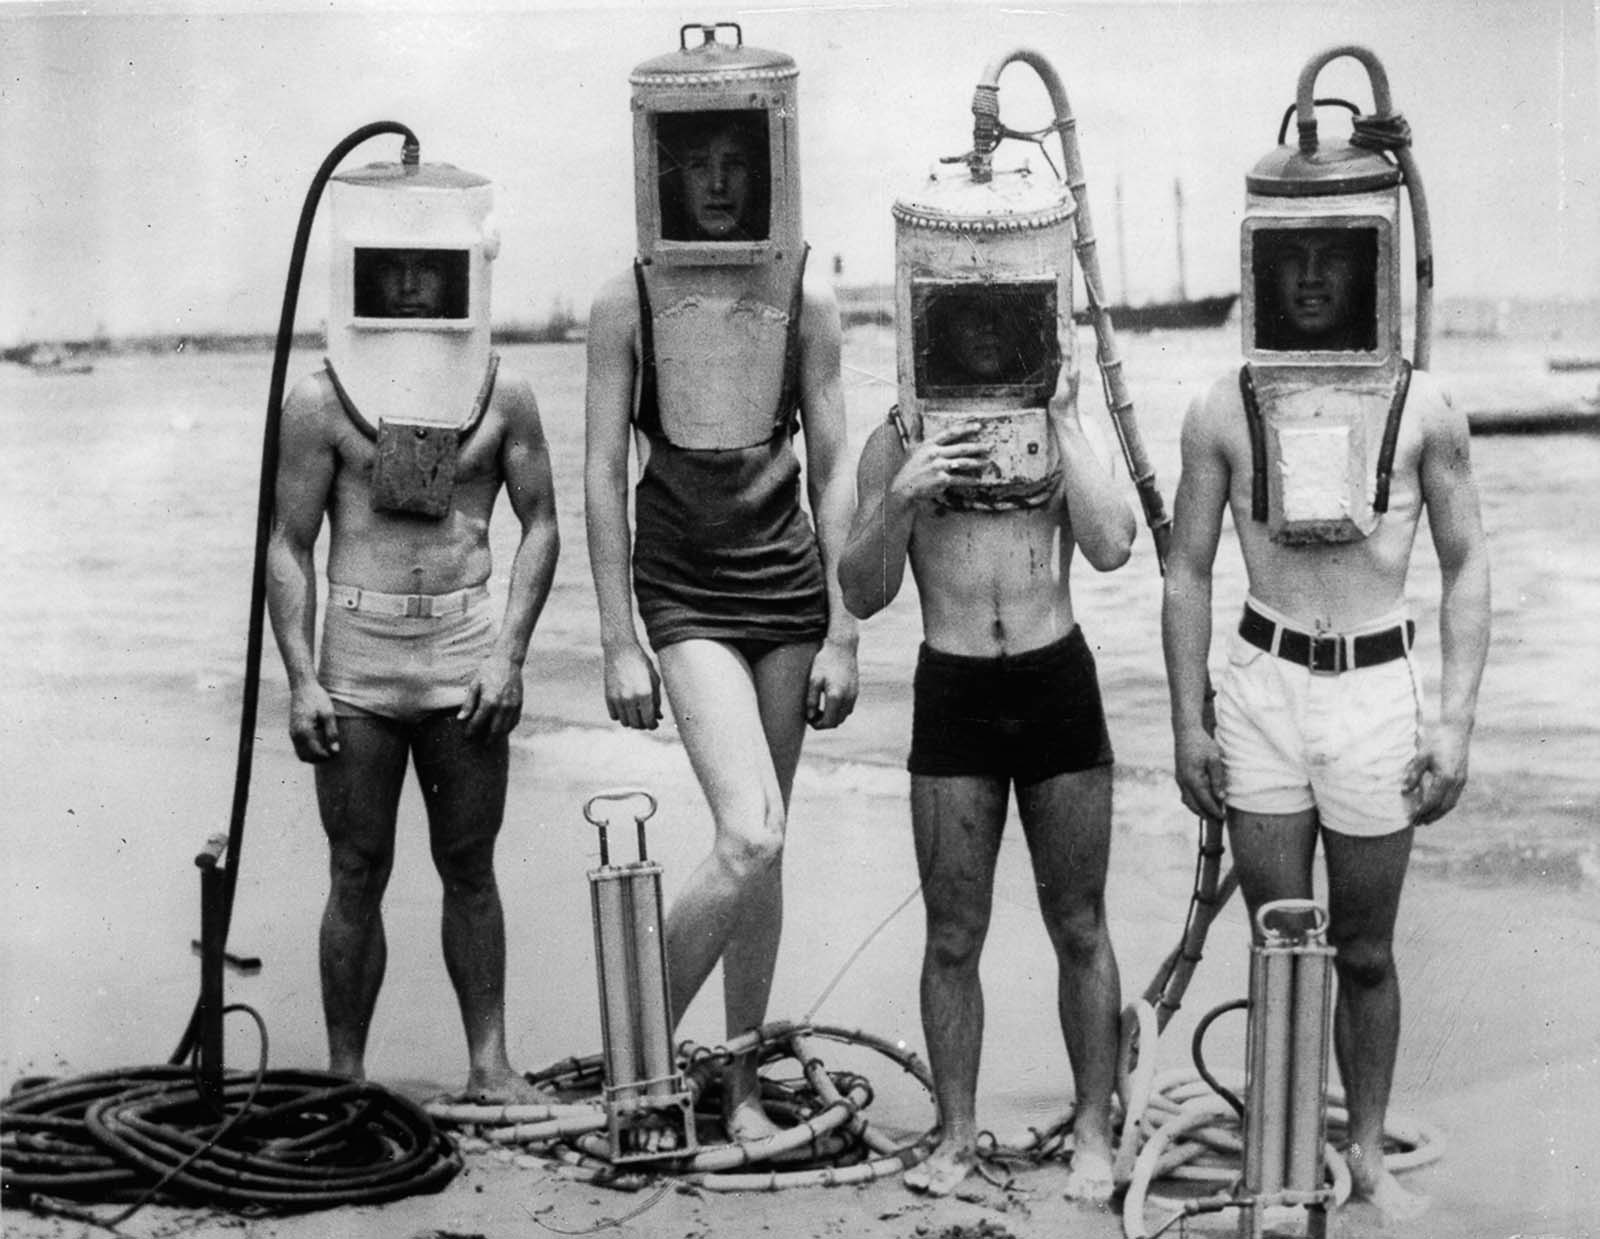 A group of Los Angeles boys show off diving helmets made from sections of hot water heaters, boilers and other easily secured junk. 1933.